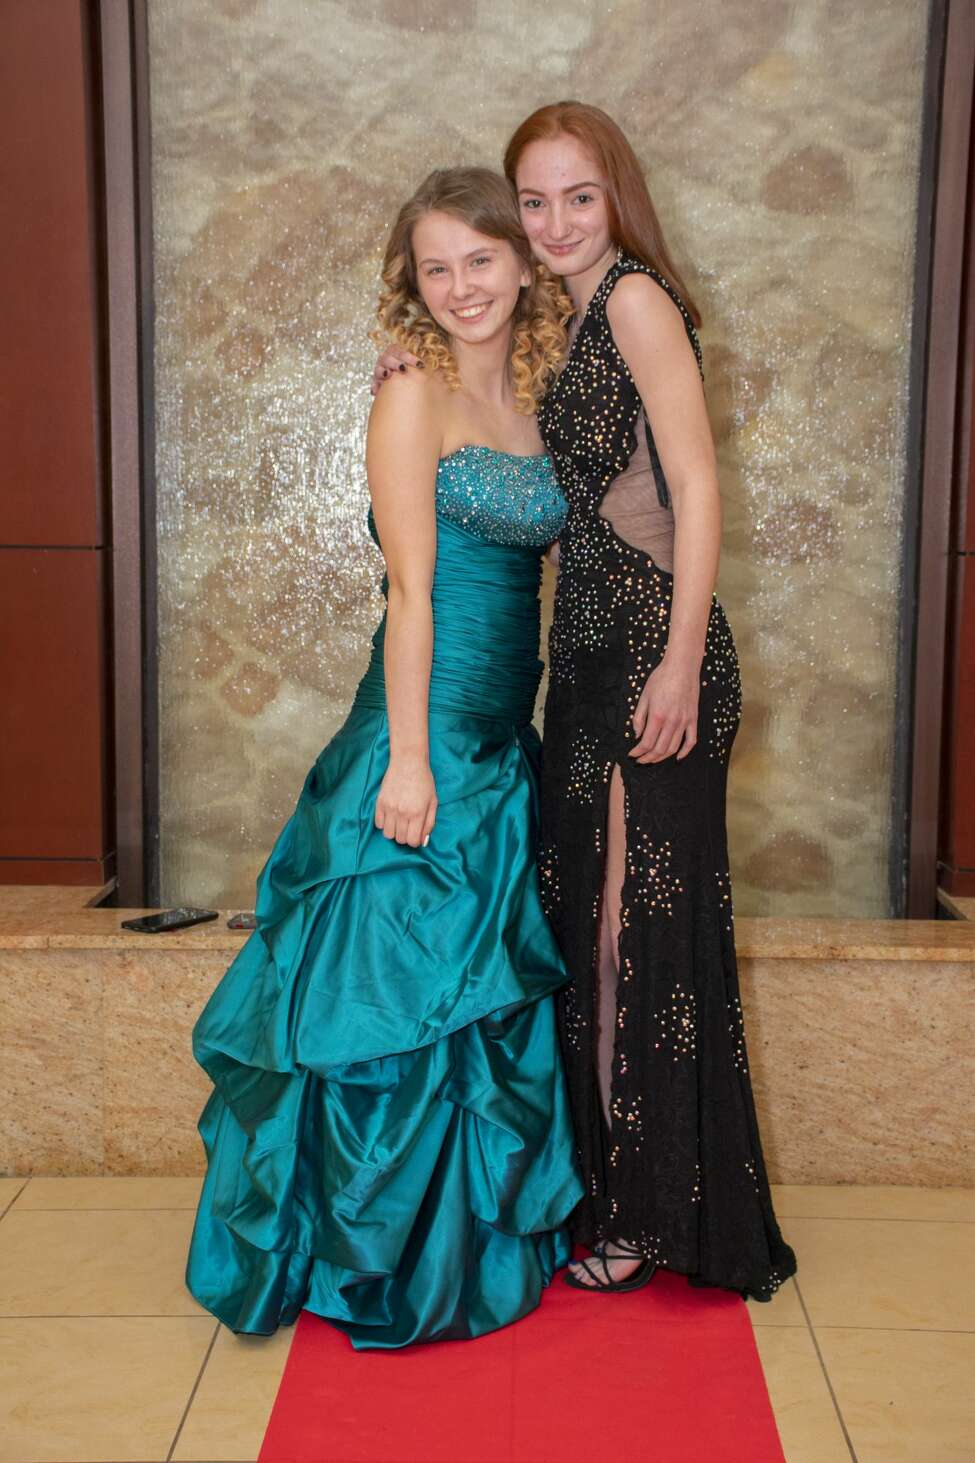 Were you seen at the Ravena-Coeymans-Selkirk High School Junior Prom at the Hilton Garden Inn in Troy on May 4th 2019?